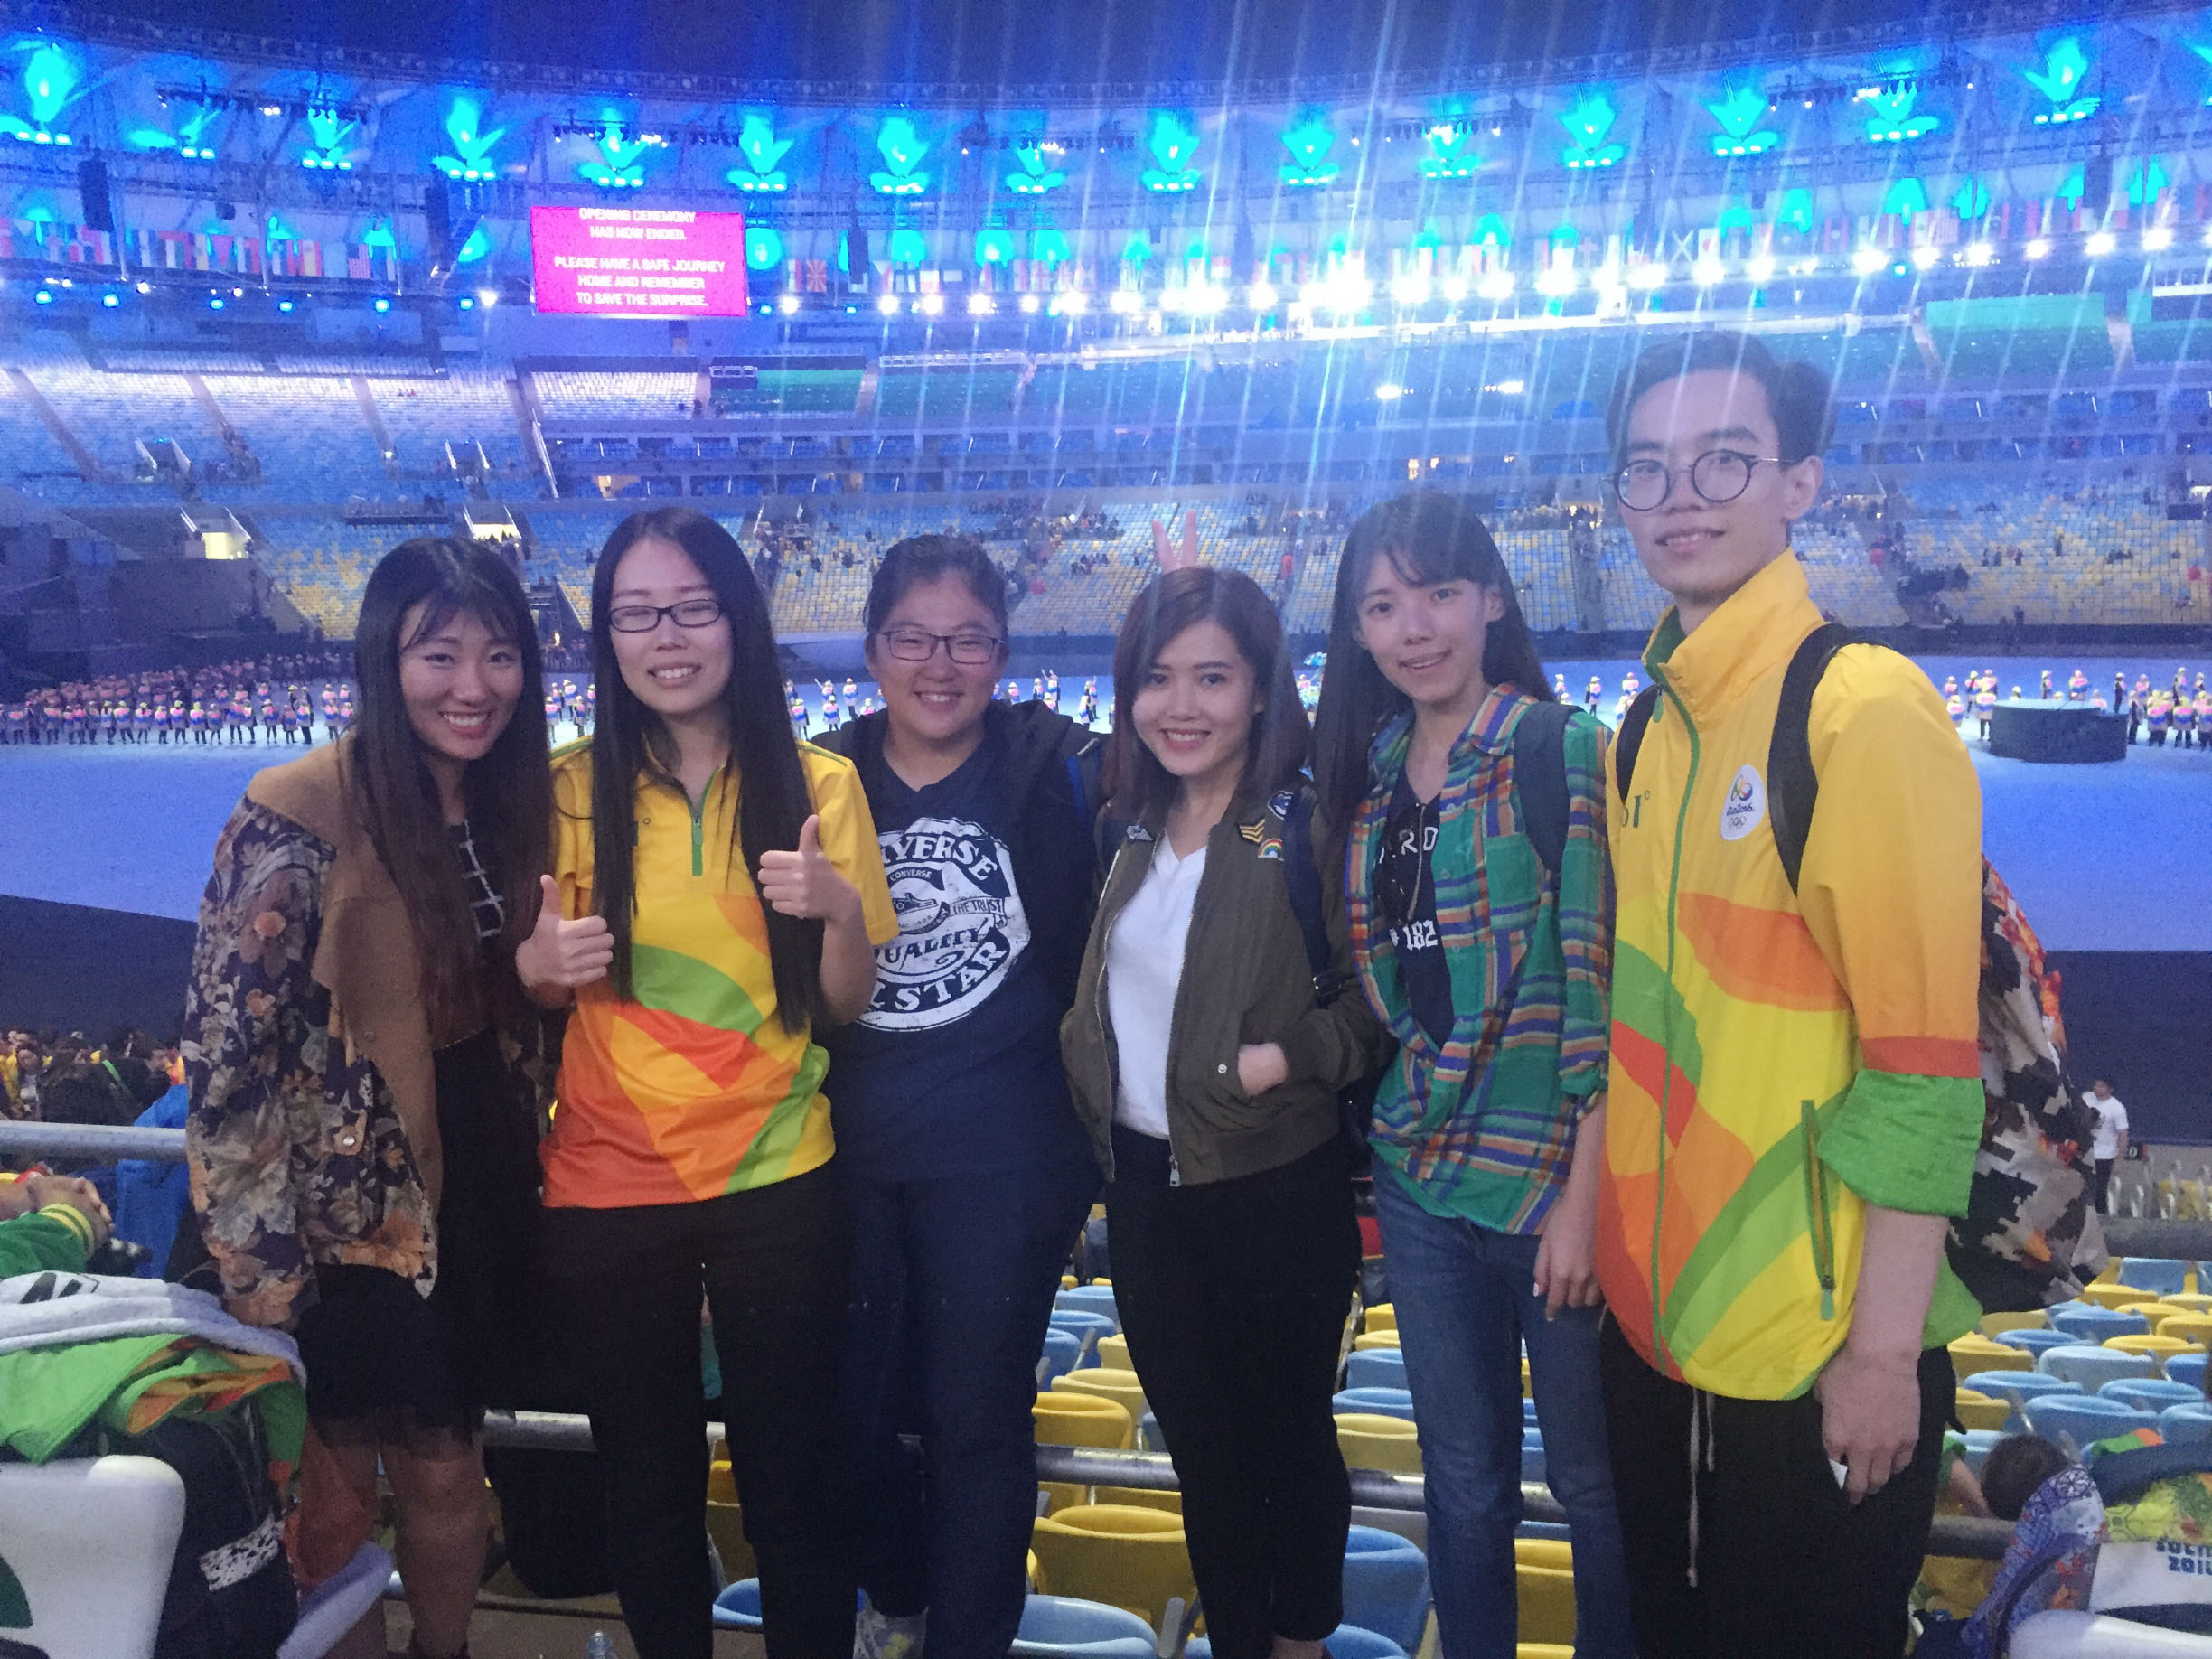 UM students worked as volunteers for the Rio Olympics